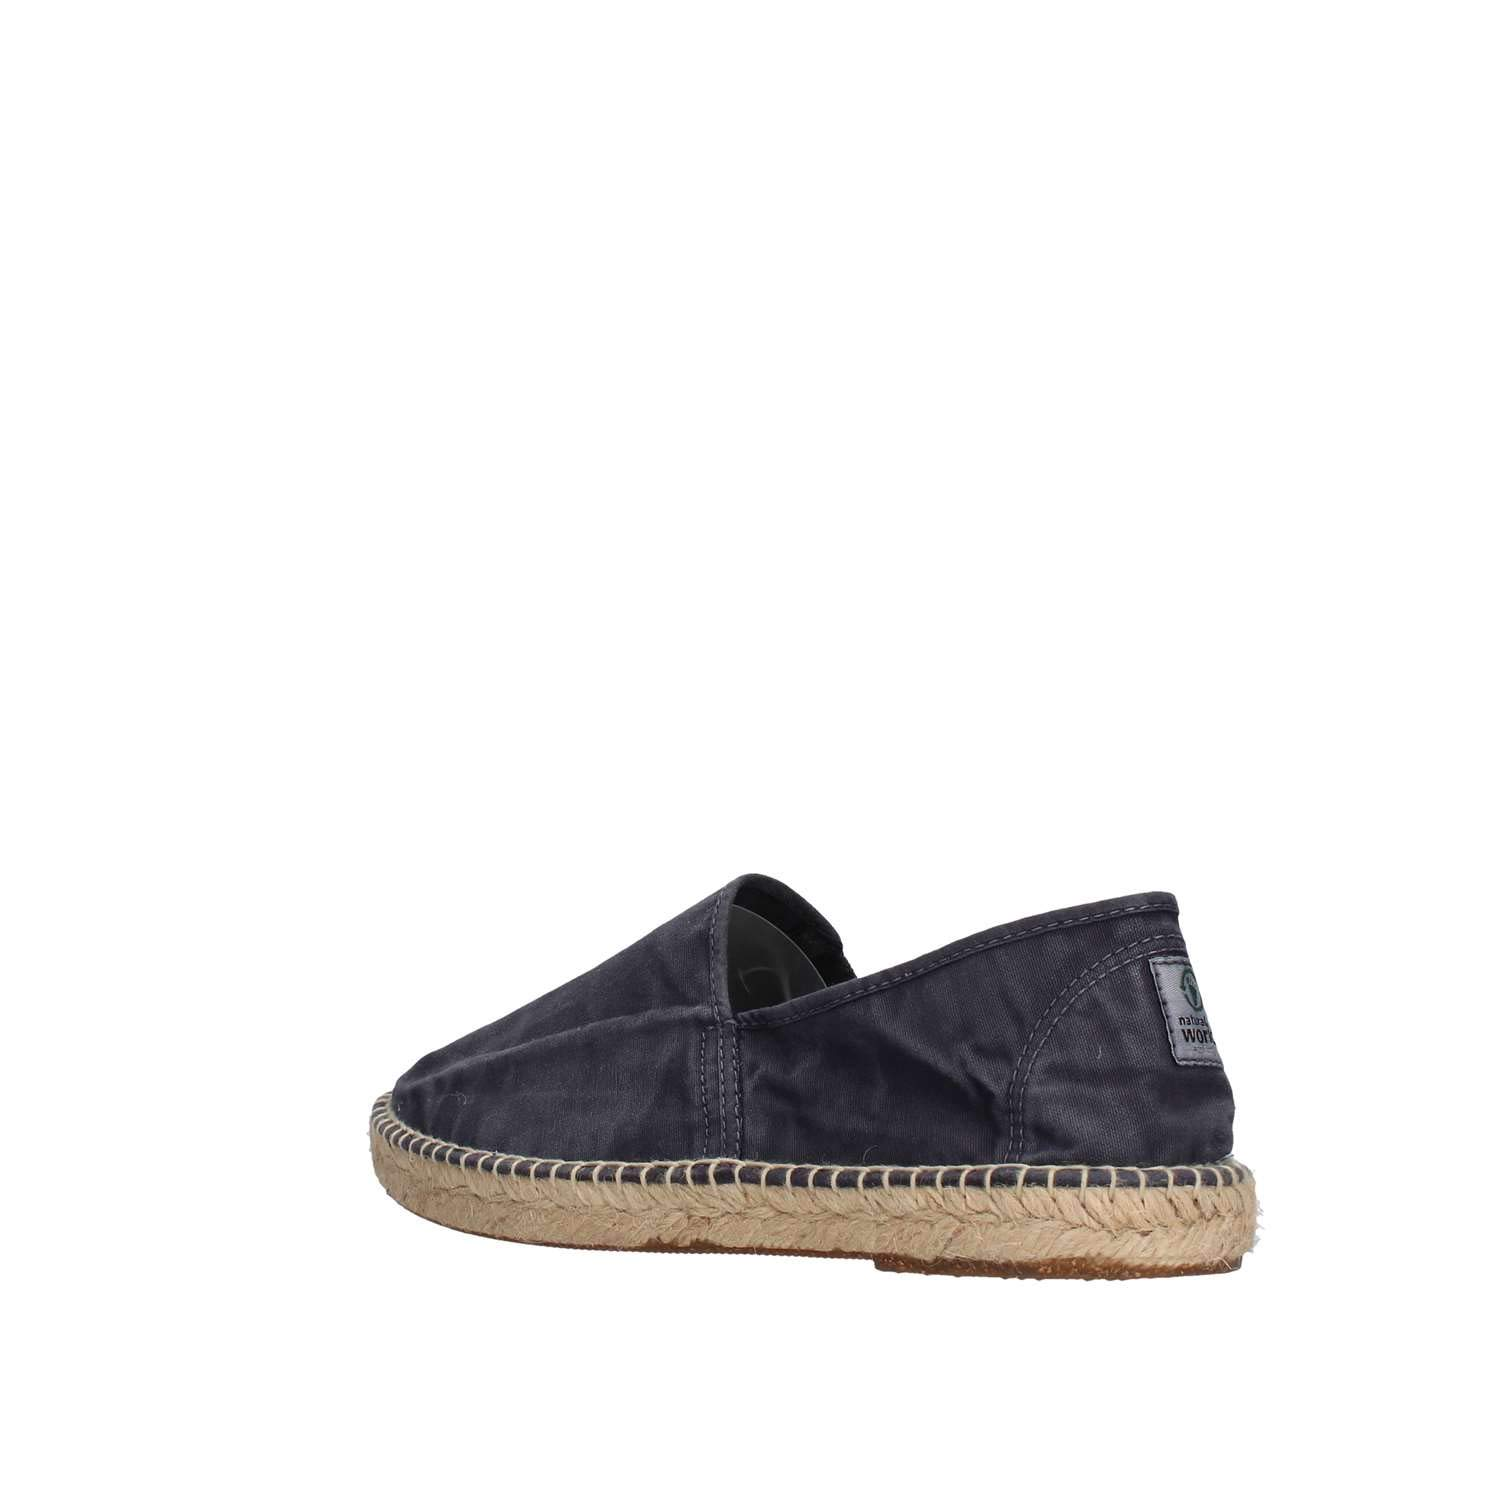 Natural World Scarpe Uomo Espadrlles Slip on Cotone Bio